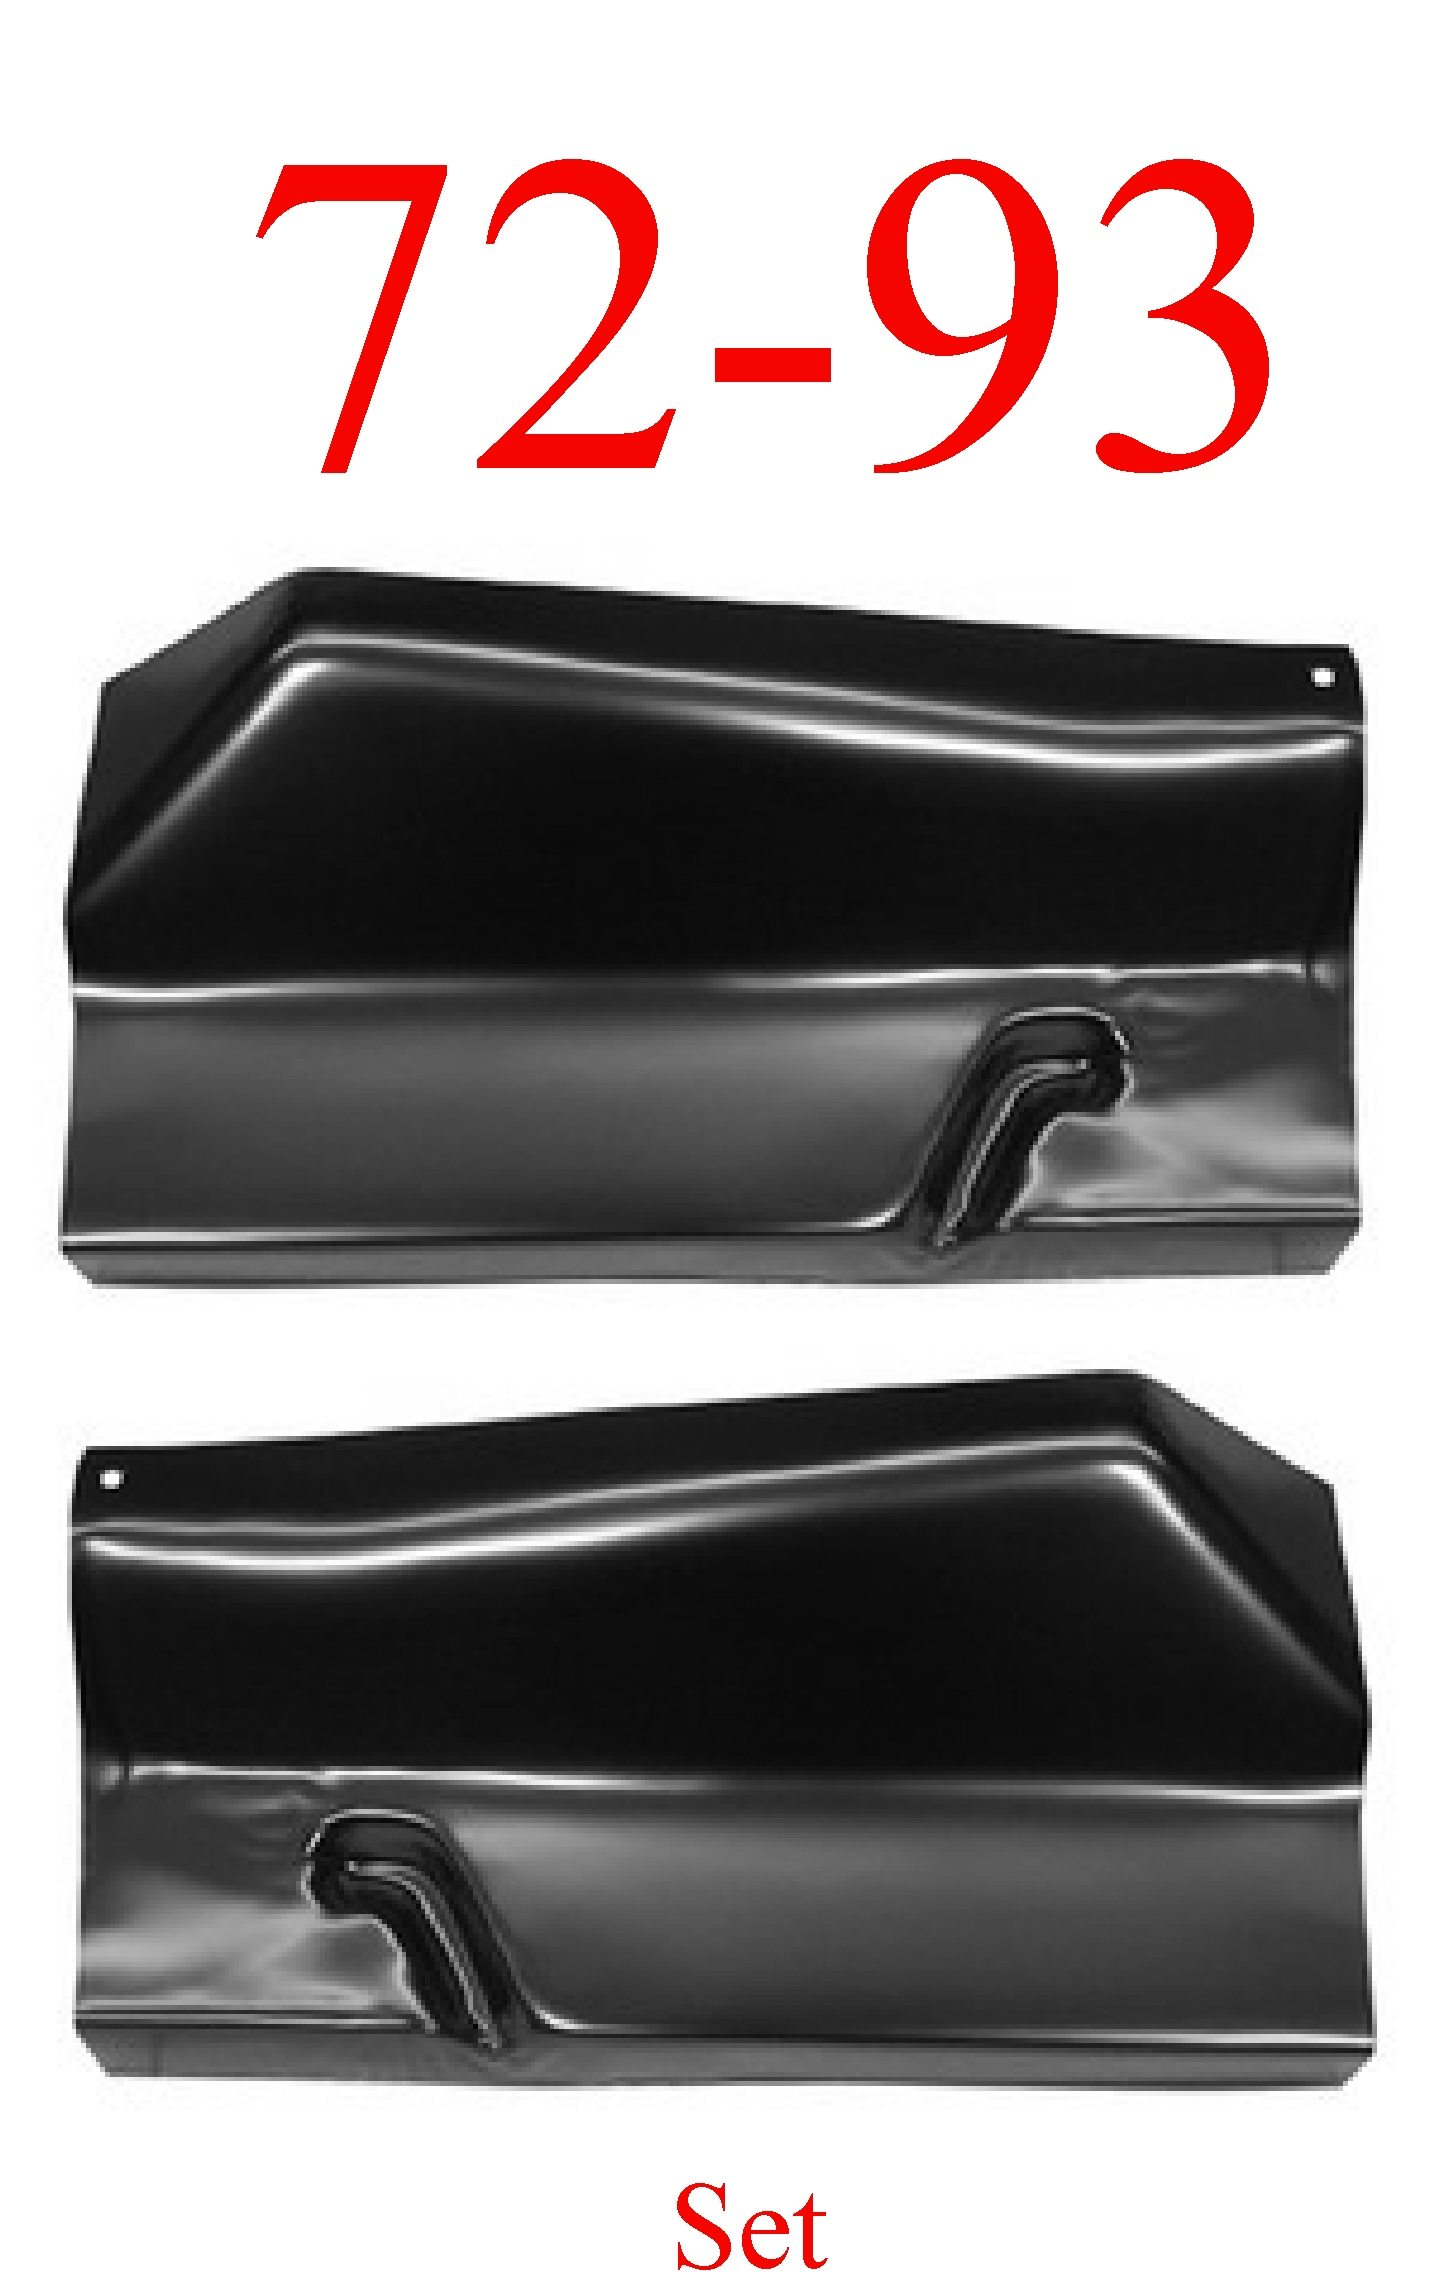 72-93 Dodge Outer Floor Panel Set